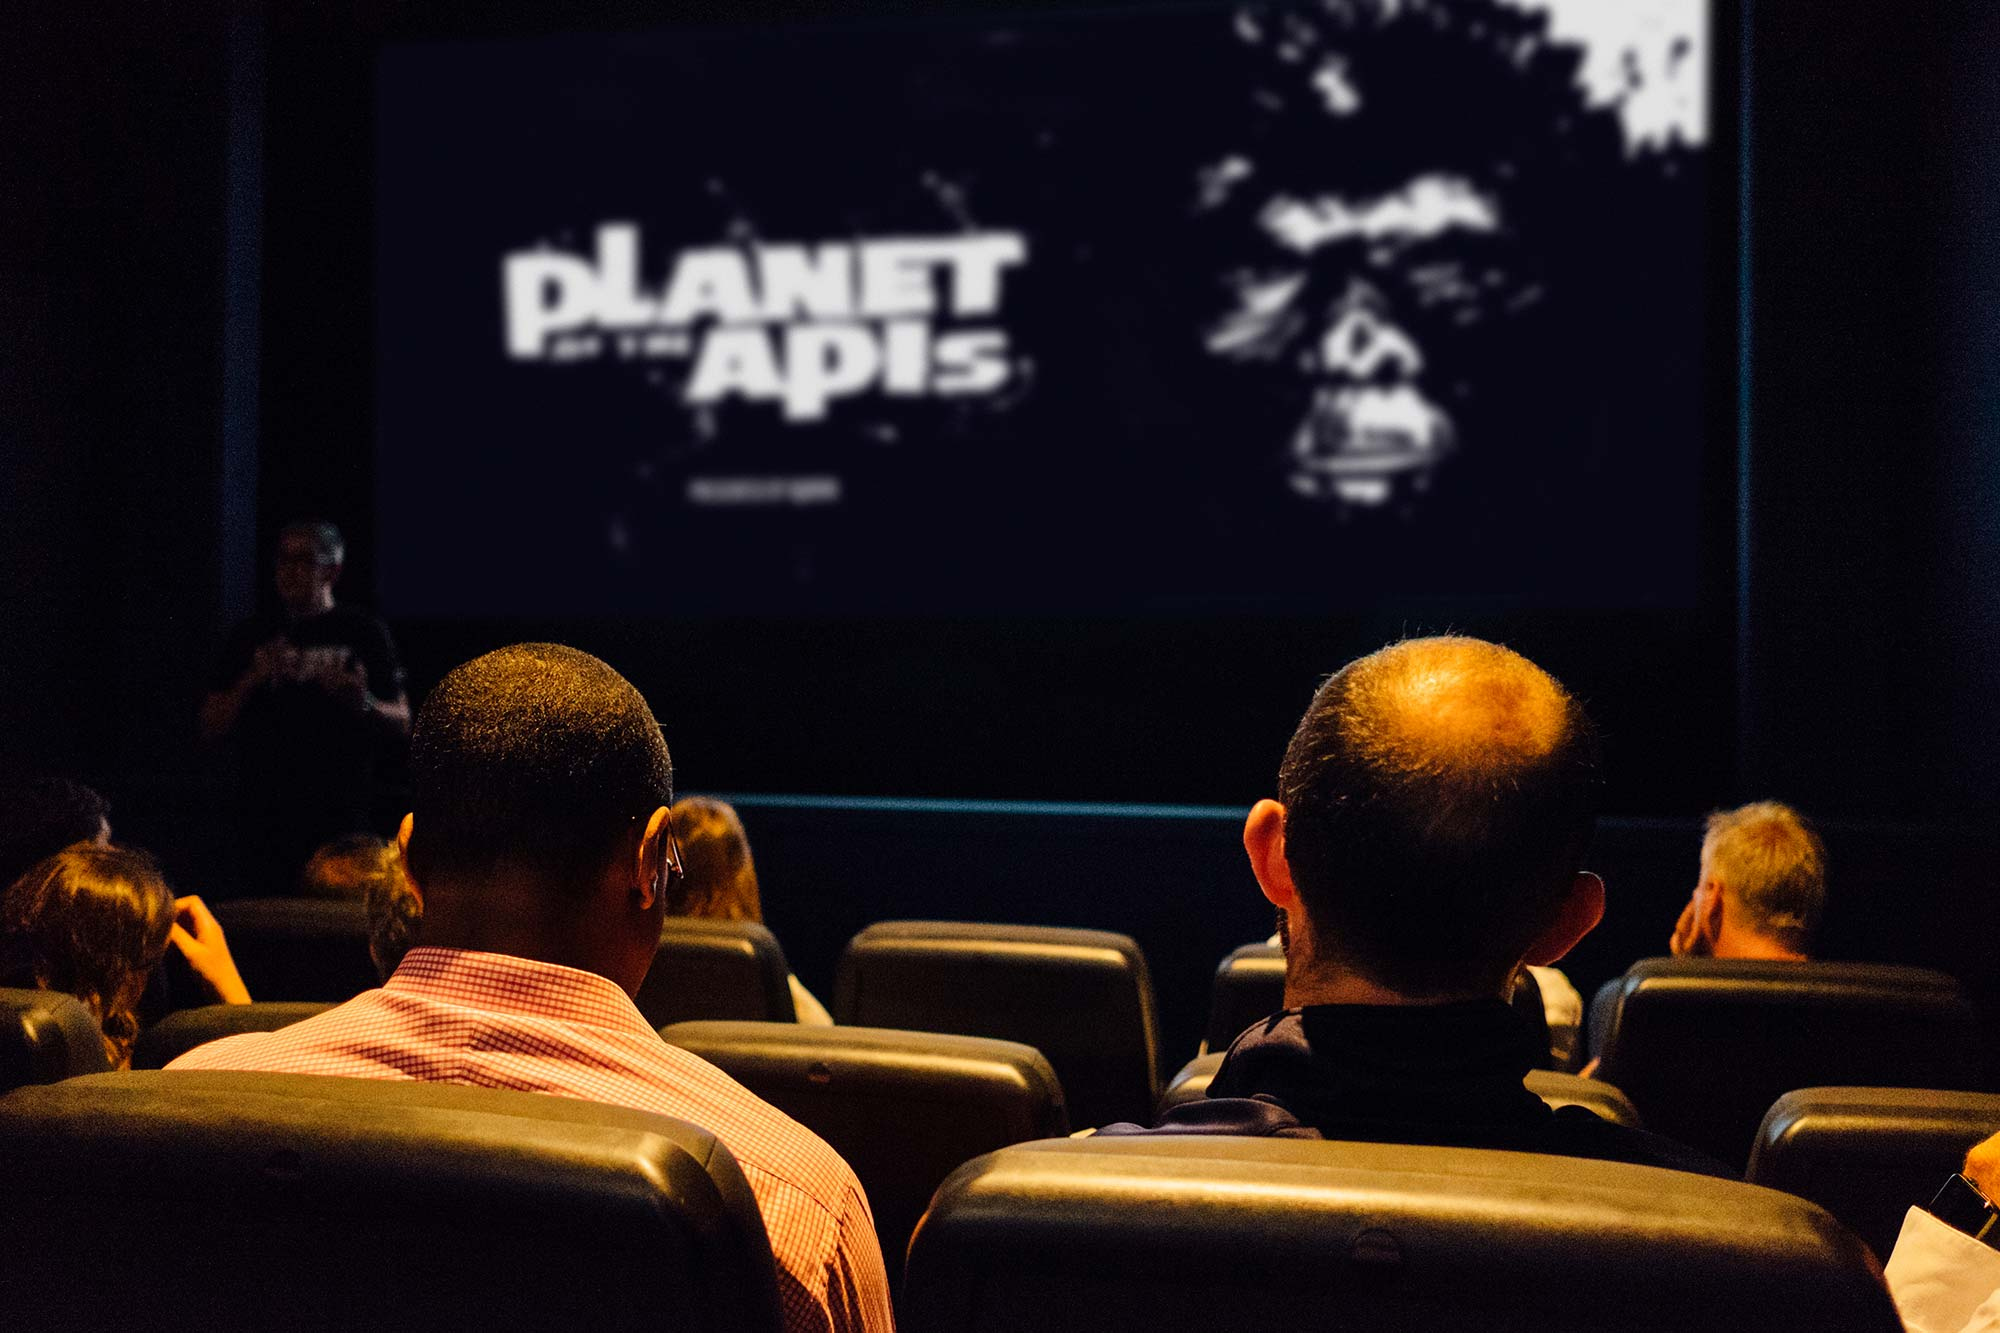 Planet of the Apes Cinema